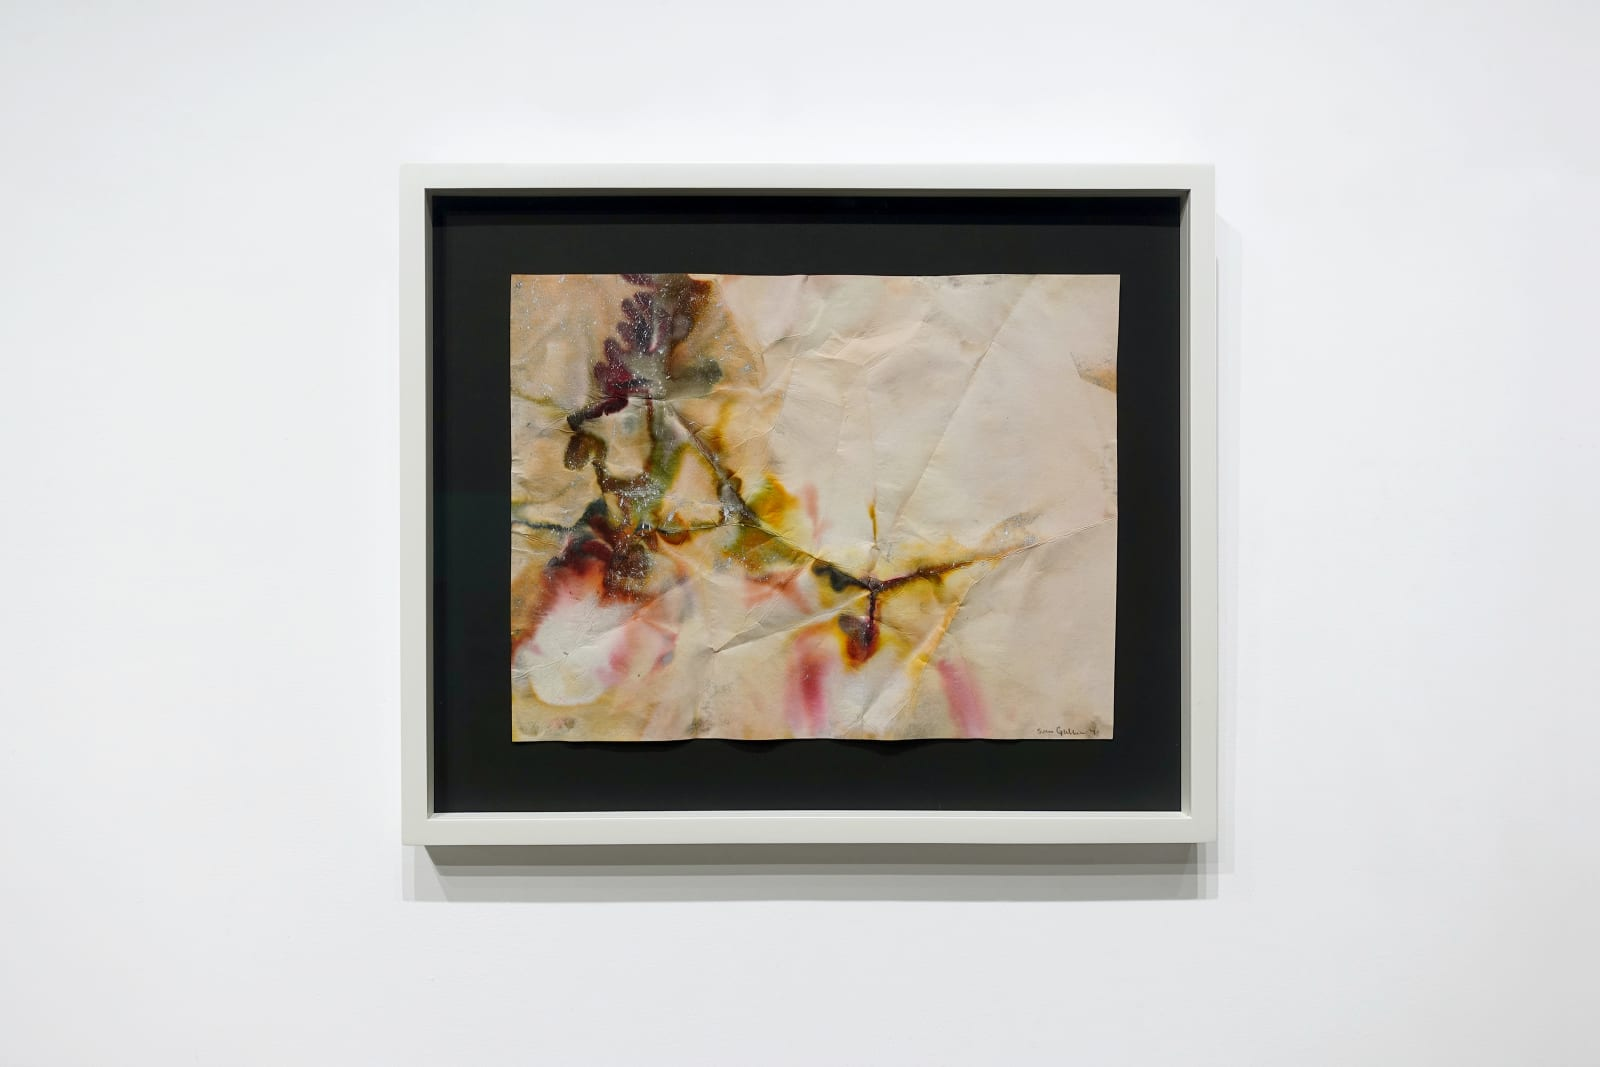 Sam Gilliam, Untitled, 1971, Mixed media on paper, 13 3/4 x 17 5/8 inches